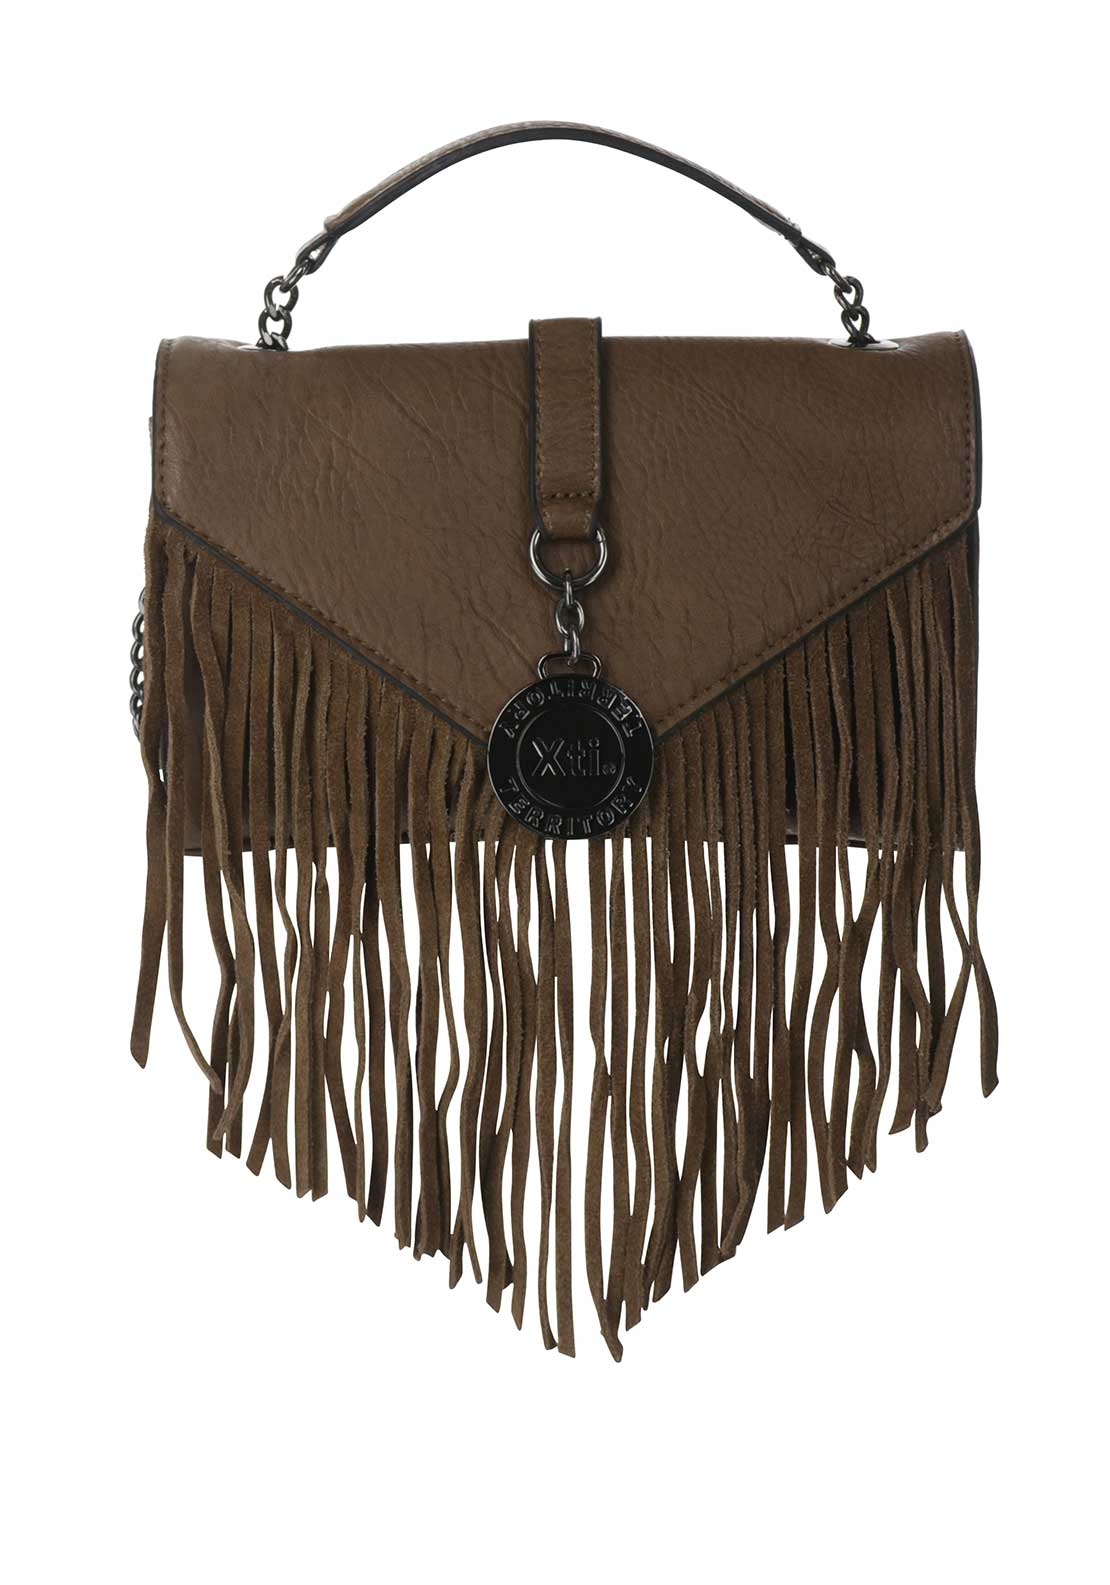 Xti Fringed Crossbody Bag, Brown